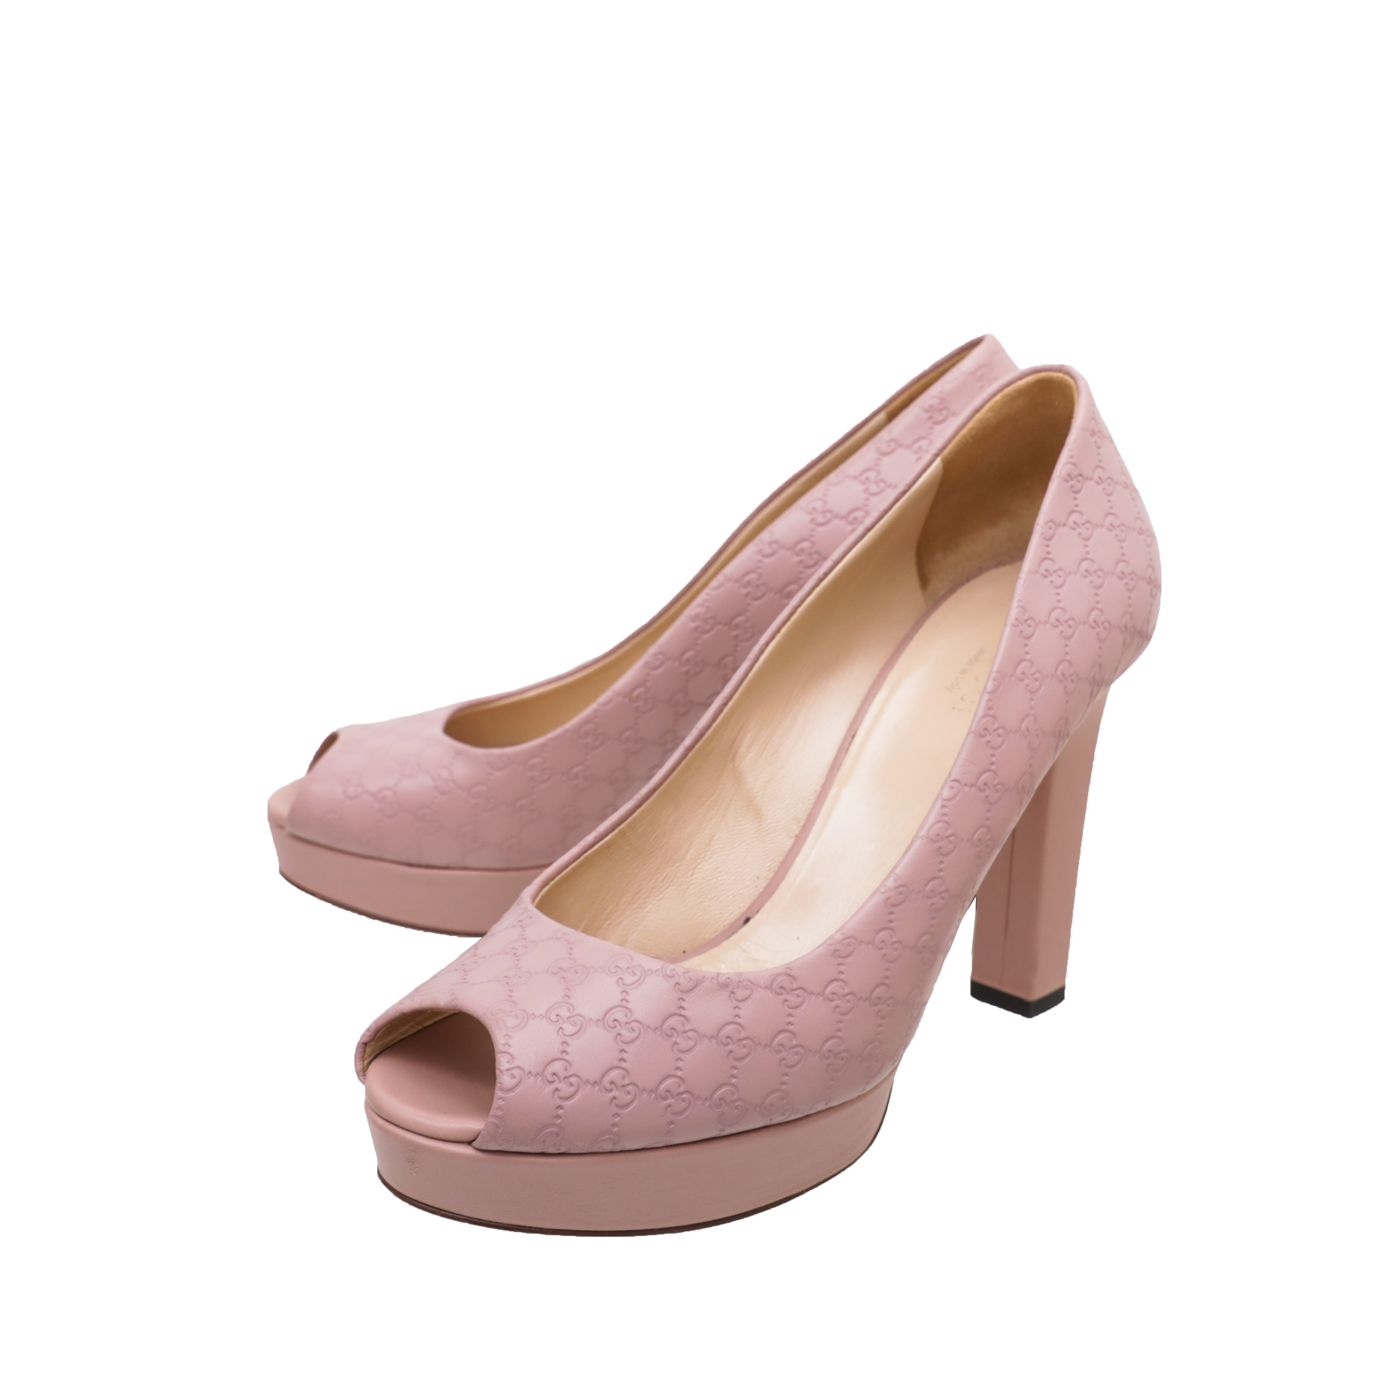 Gucci Rose Antique GG Microguccissima Peep Toe Platform Pump 38